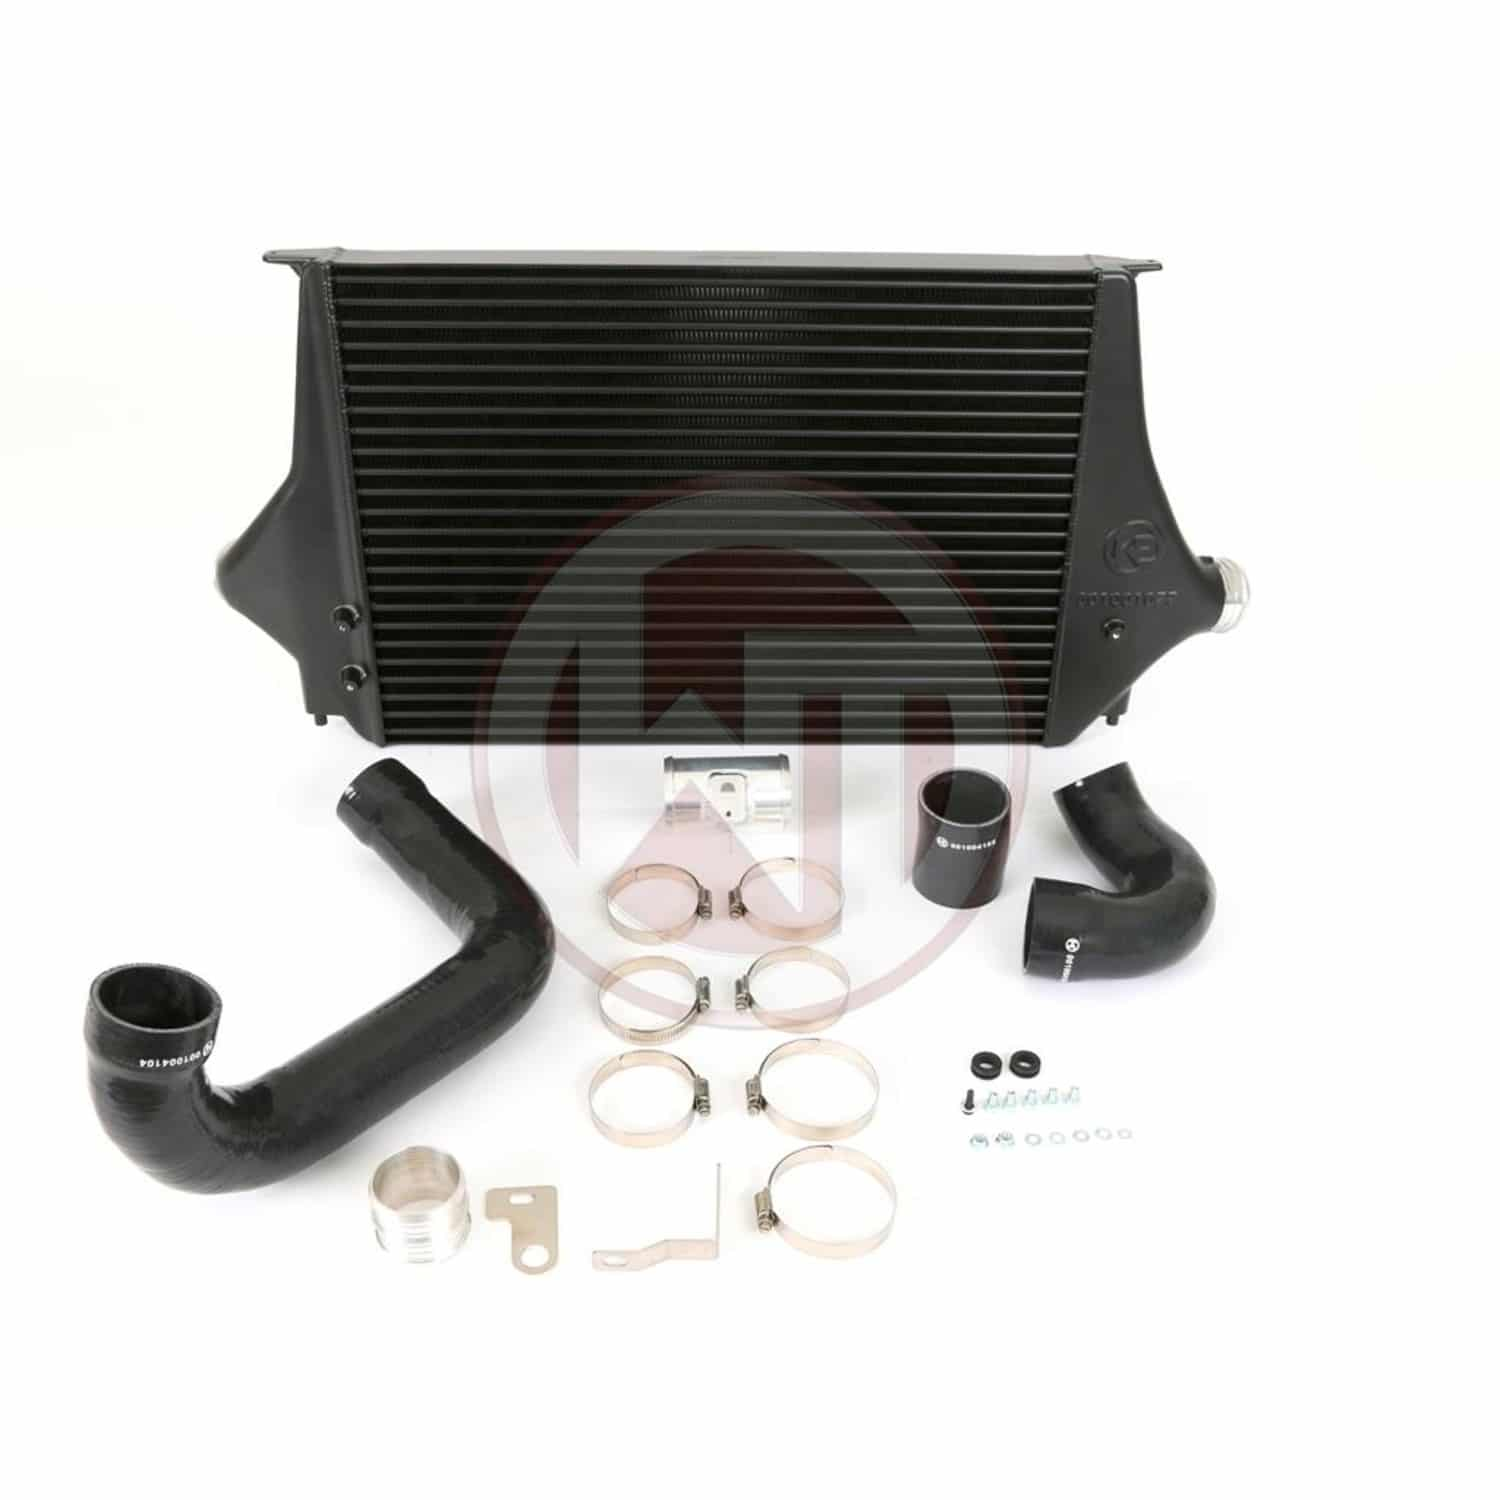 58d3f8611 Wagner Tuning Vauxhall Astra J VXR Competition Intercooler Kit – 200001102